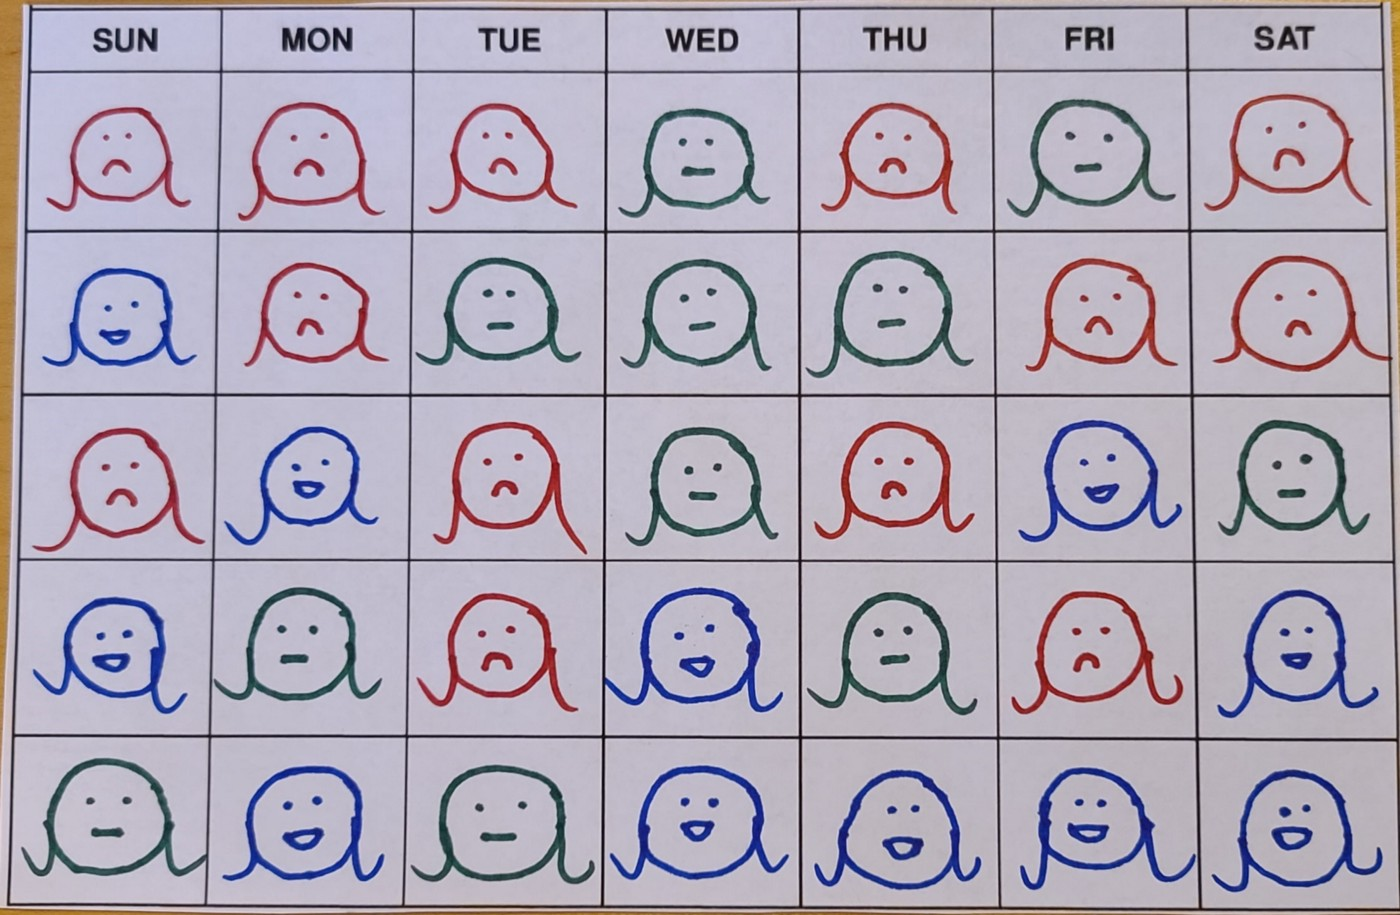 An illustrated calendar tracking sad, neutral, or happy emotions for a month with red, green, and blue faces.